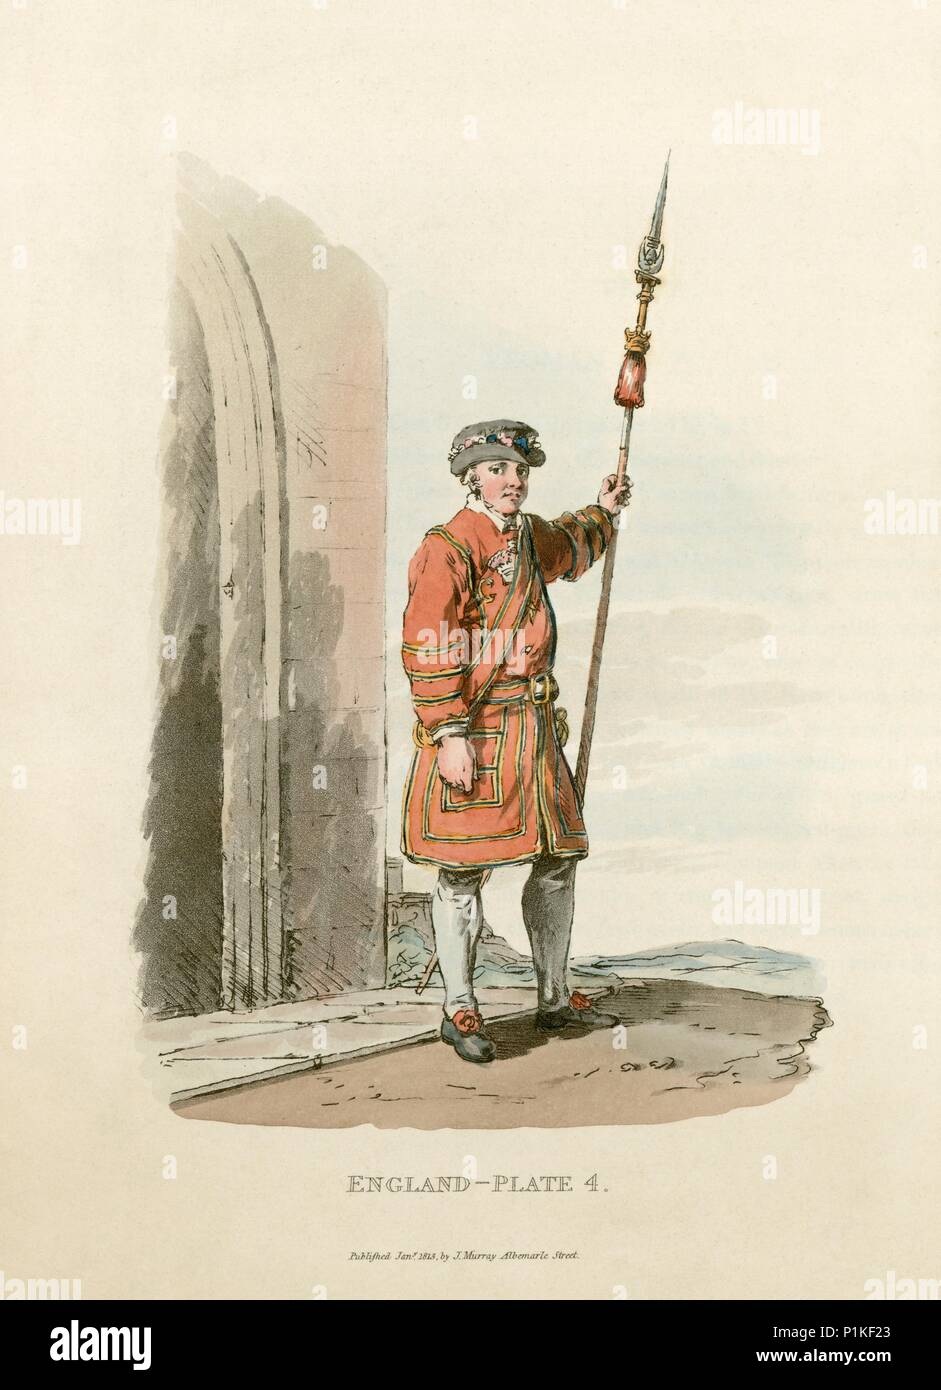 Yeoman of the Guard, St James' Palace, Westminster, London, 1813. A  Yeoman of the Guard on duty. These royal bodyguards retain their Tudor-style dres - Stock Image